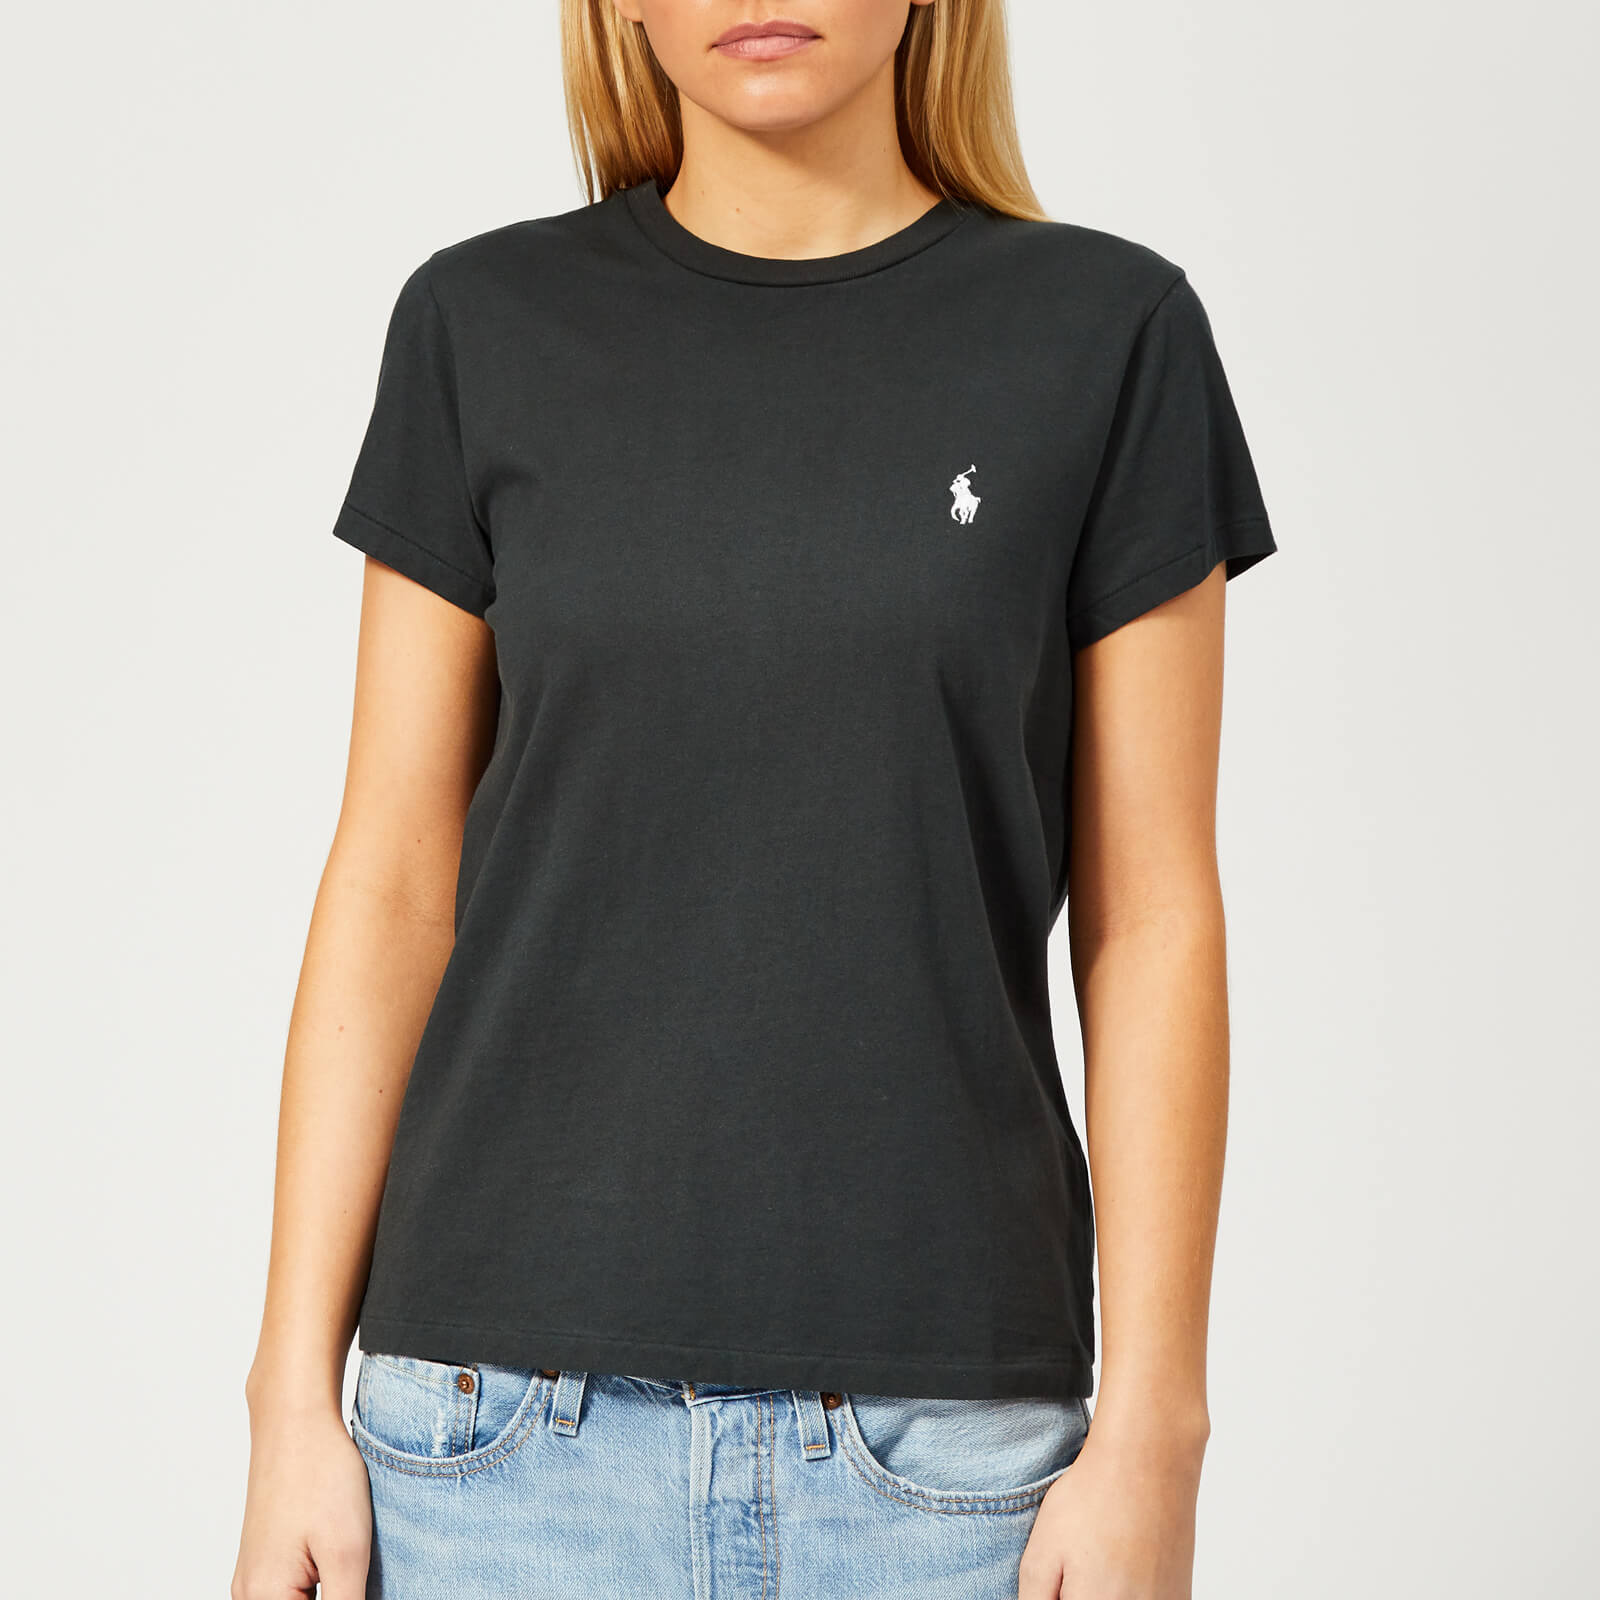 fd584695b Polo Ralph Lauren Women's Short Sleeve T-Shirt - Black - Free UK Delivery  over £50